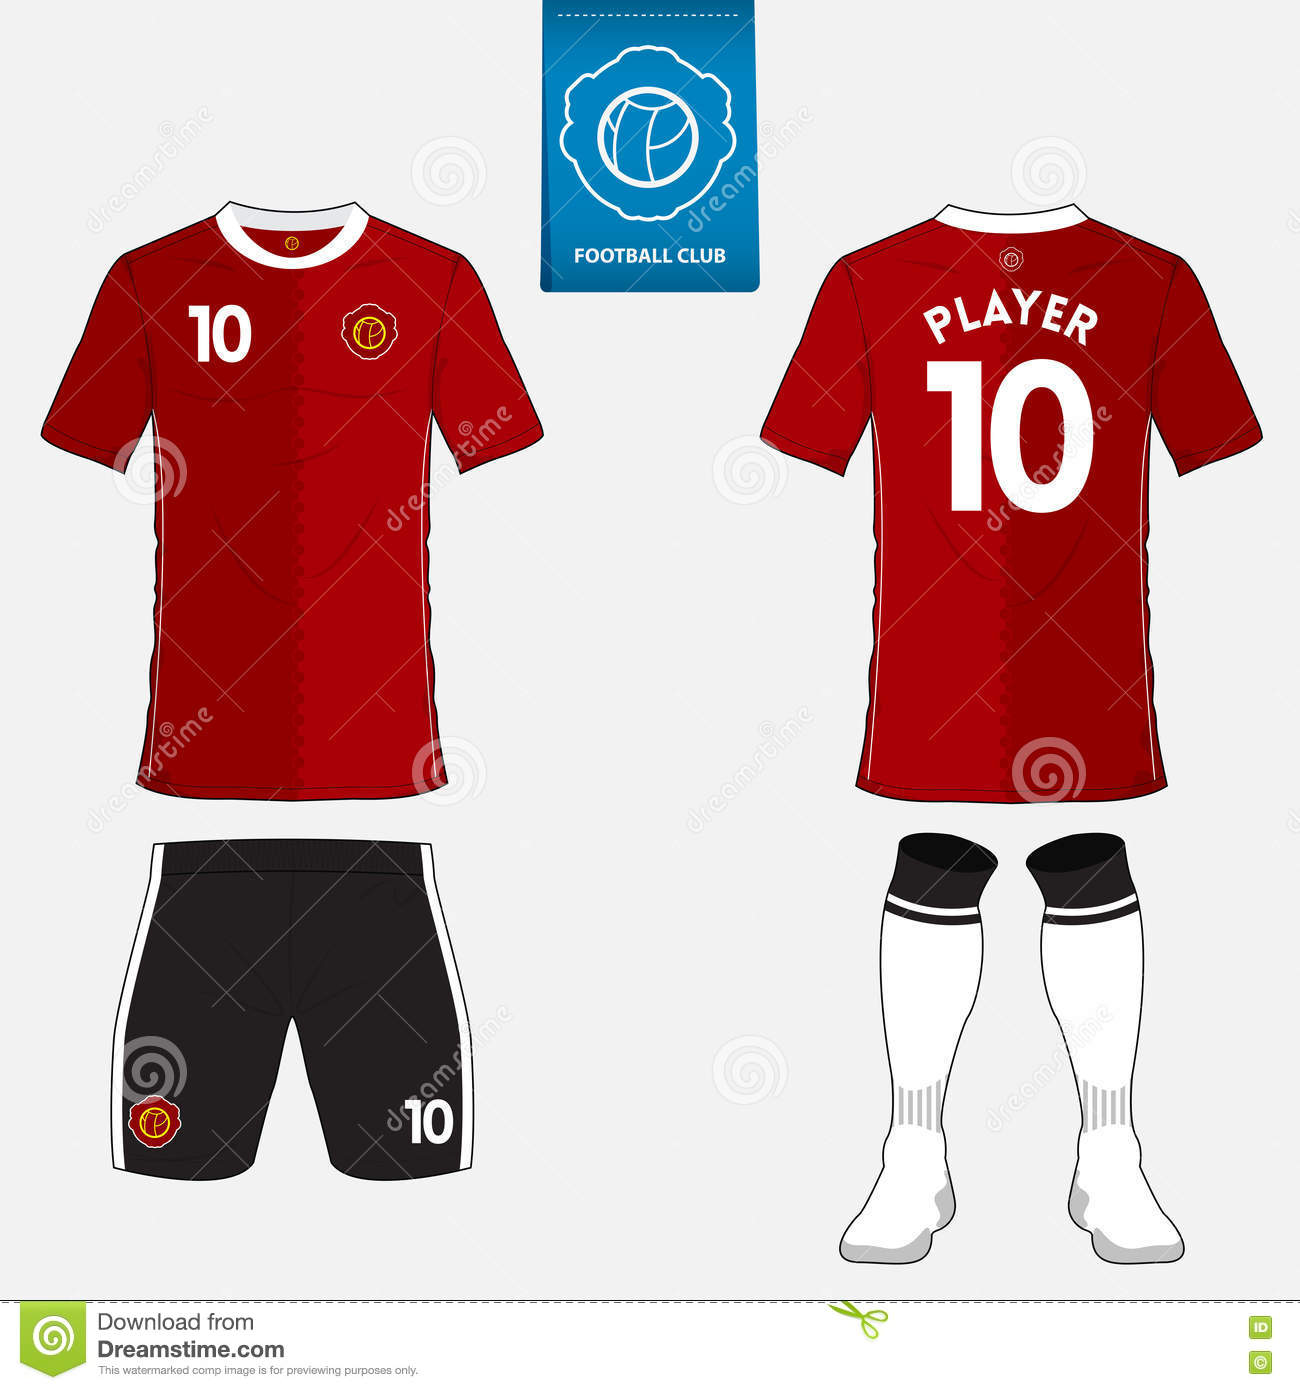 43fe883b2 Set of soccer kit or football jersey template for football club. Flat logo  on blue label. Front and back view. Football uniform. Vector Illustration